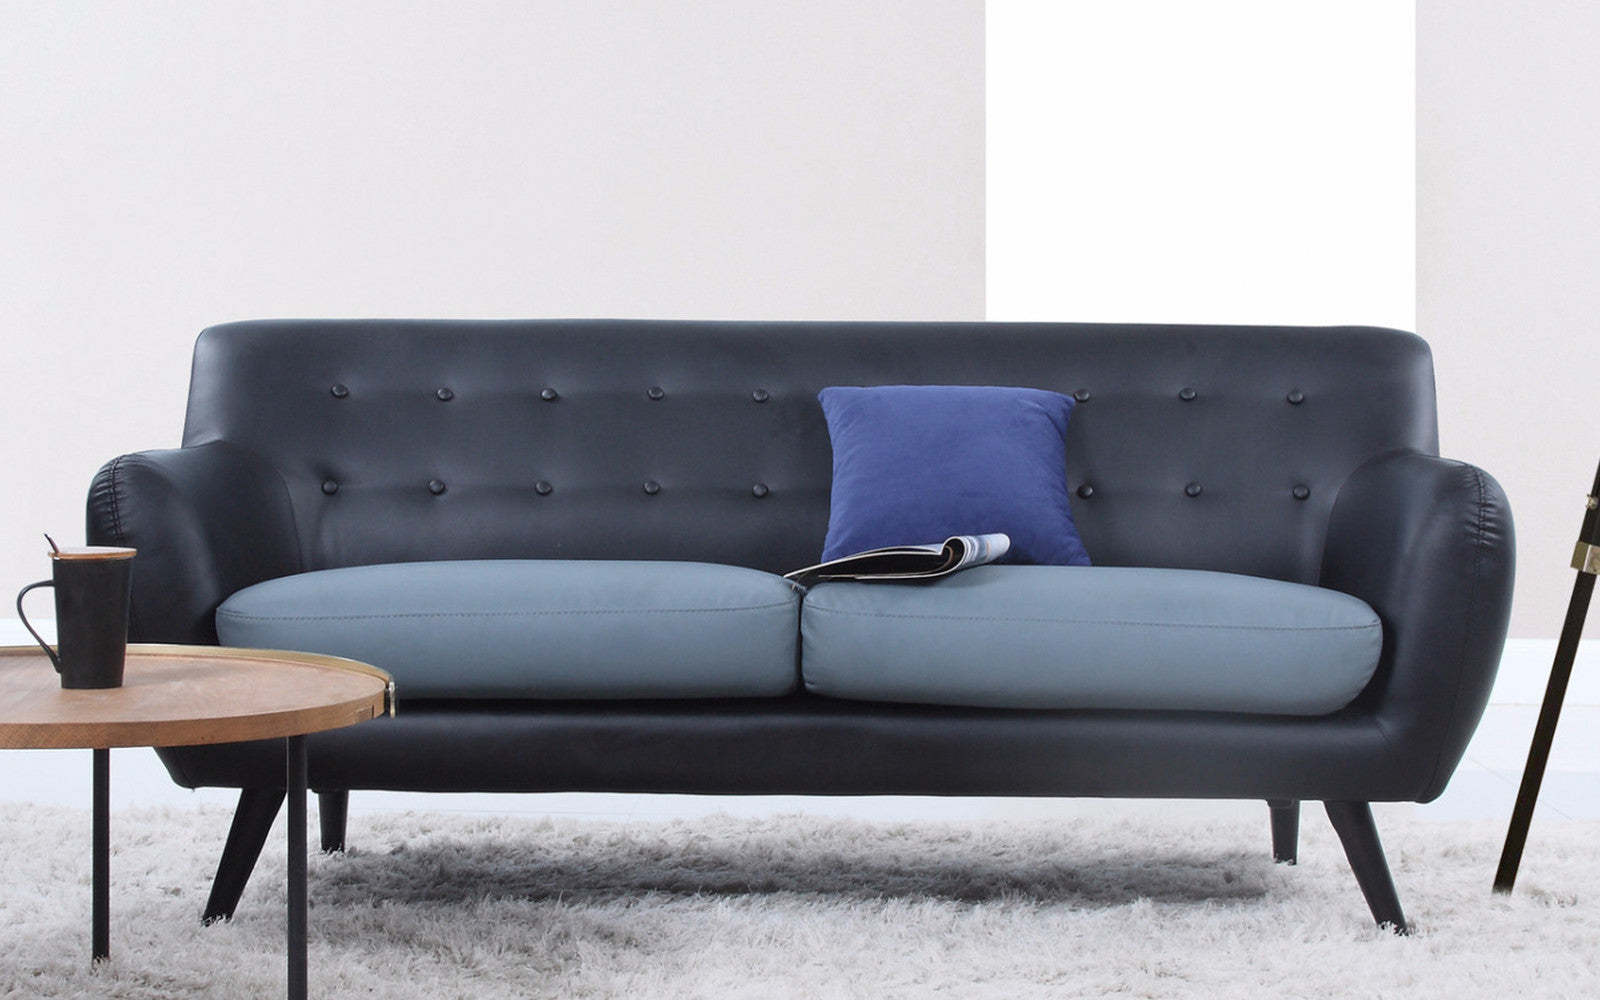 ... Nico Mid Century Modern Bonded Leather Sofa In Black And Grey ...